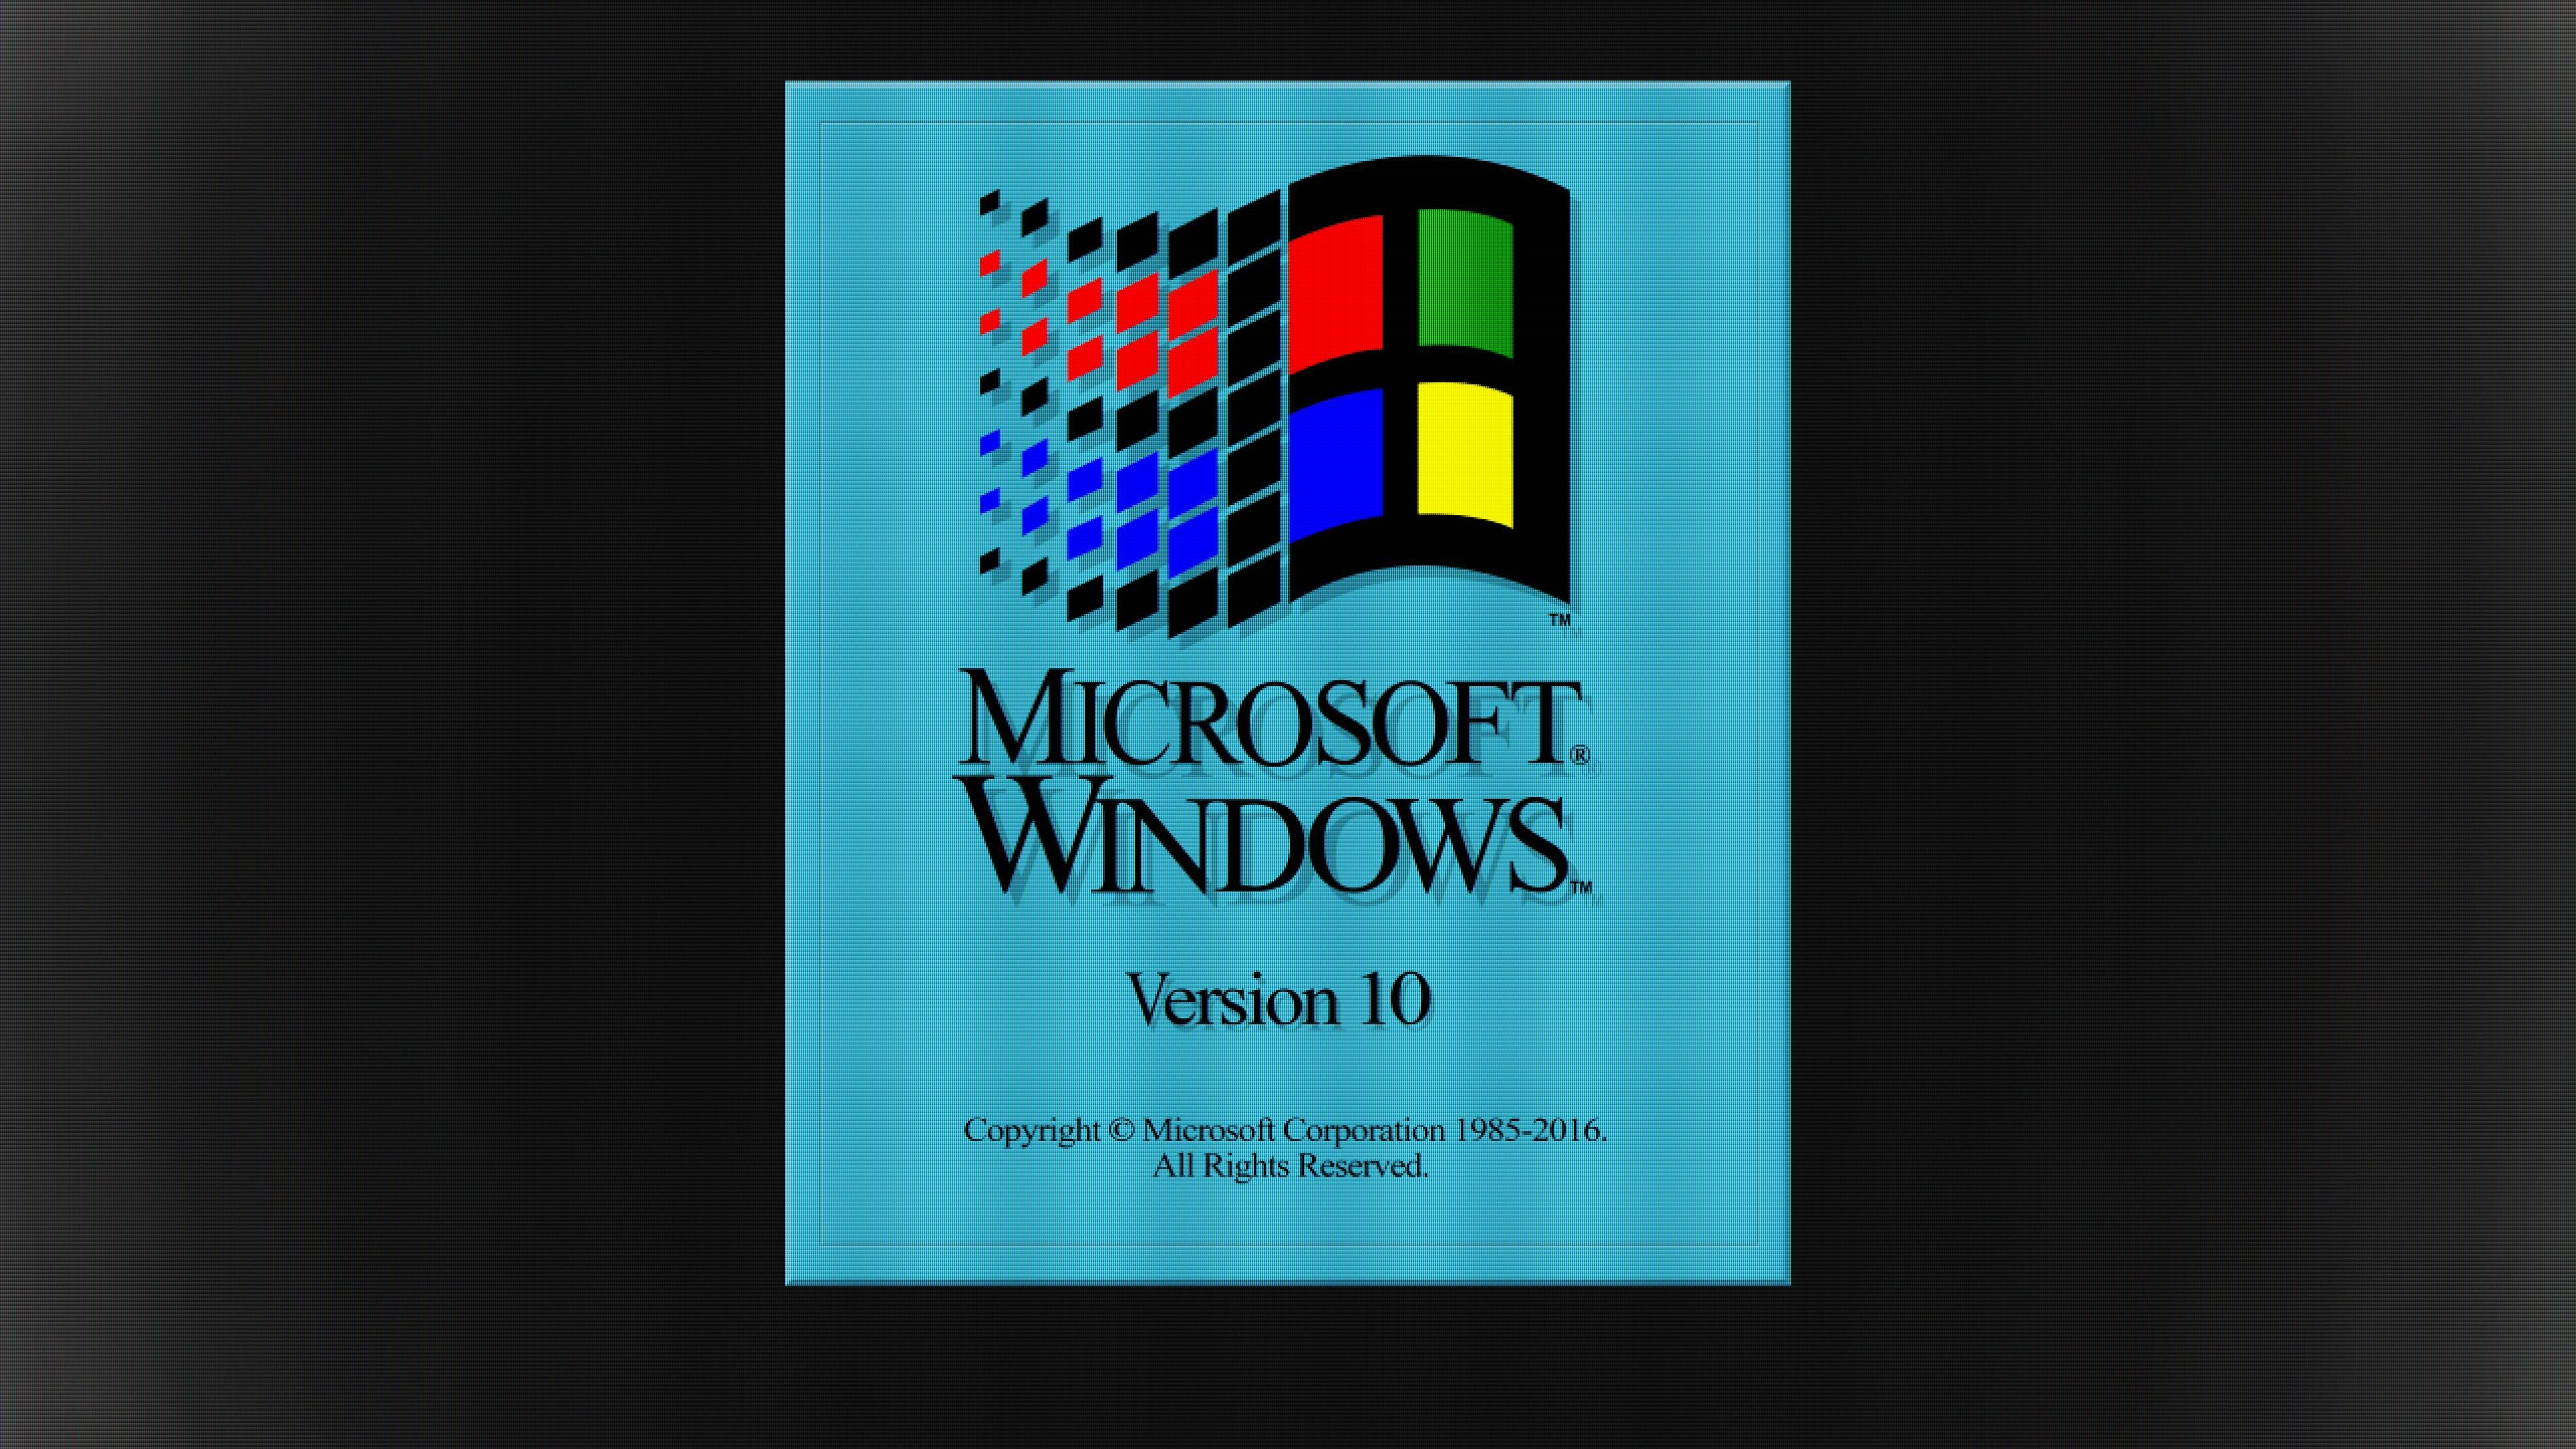 Windows 10 Retro 3 1 Boot Splash Hq Backgrounds Hd Wallpapers Gallery Gallsource Com Background Hd Wallpaper Hd Wallpaper Wallpaper